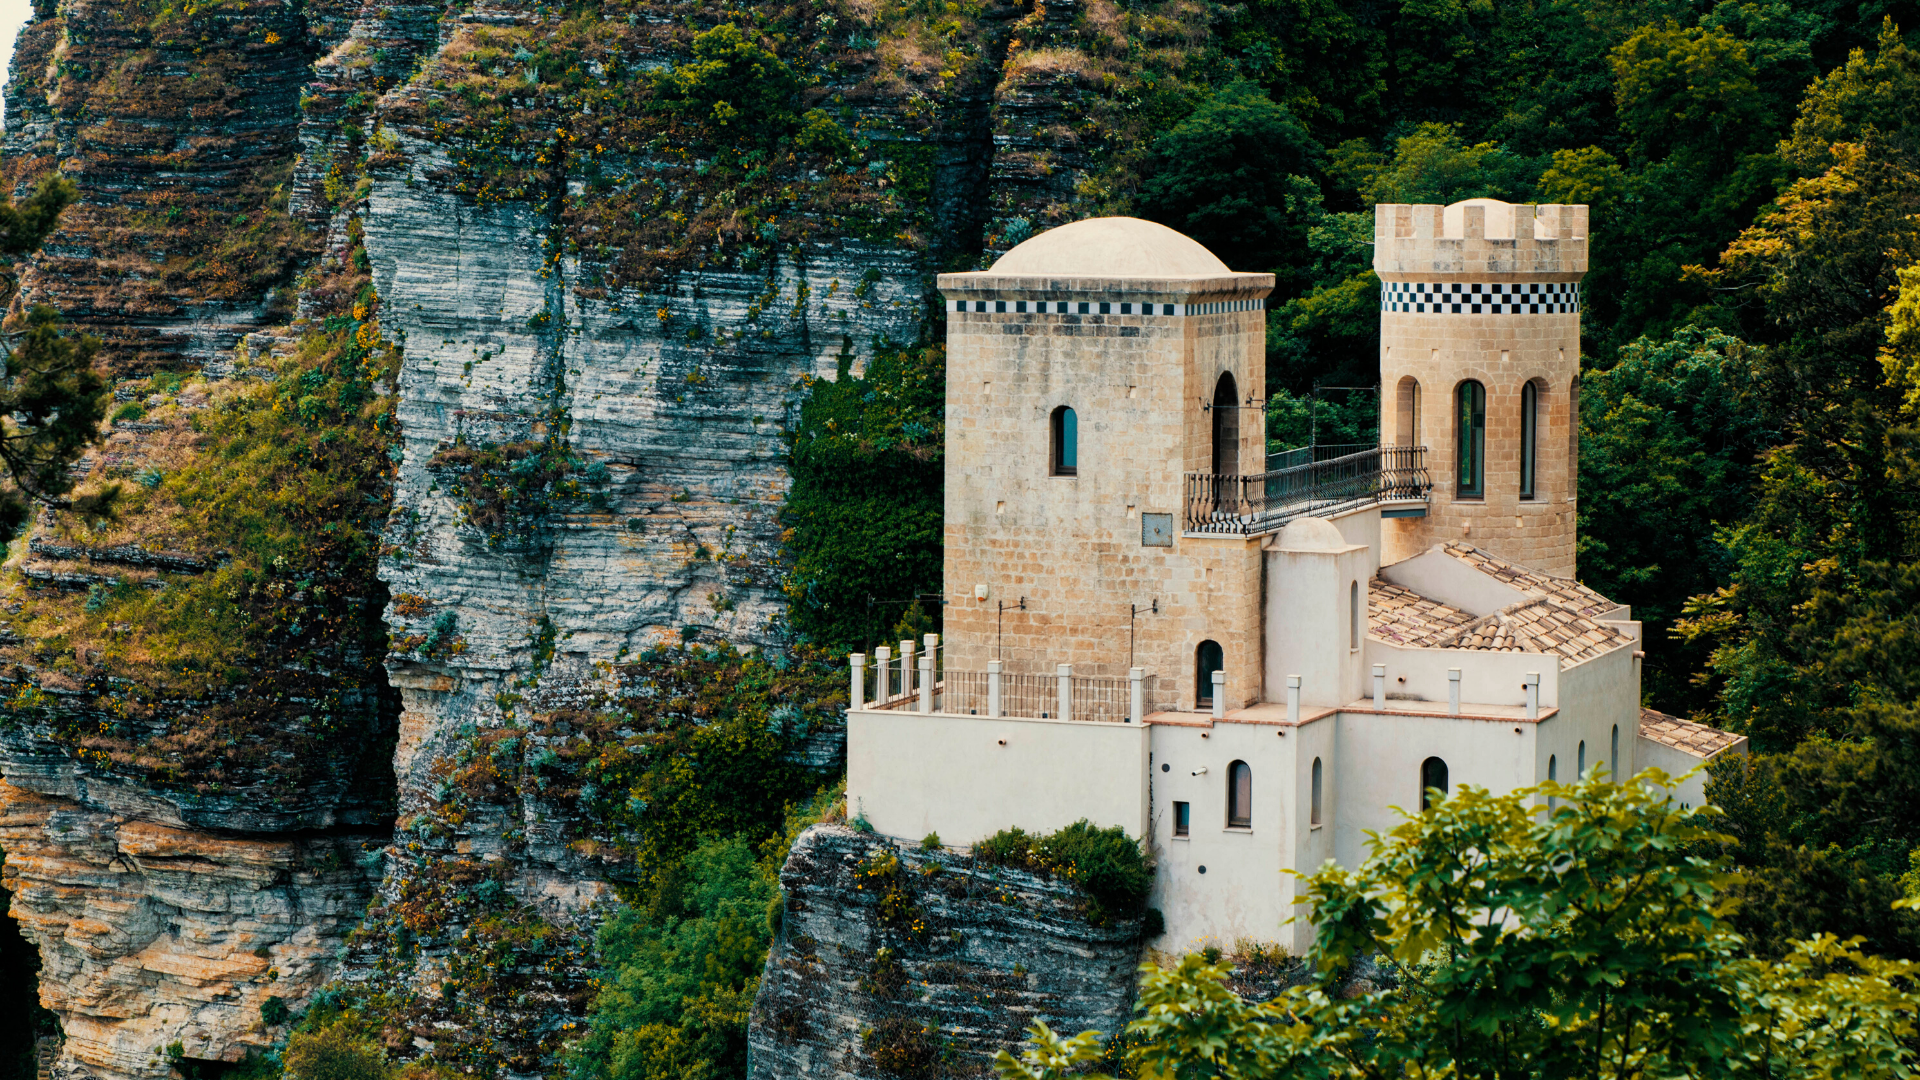 Discovering Erice, one of the most suggestive villages in Italy